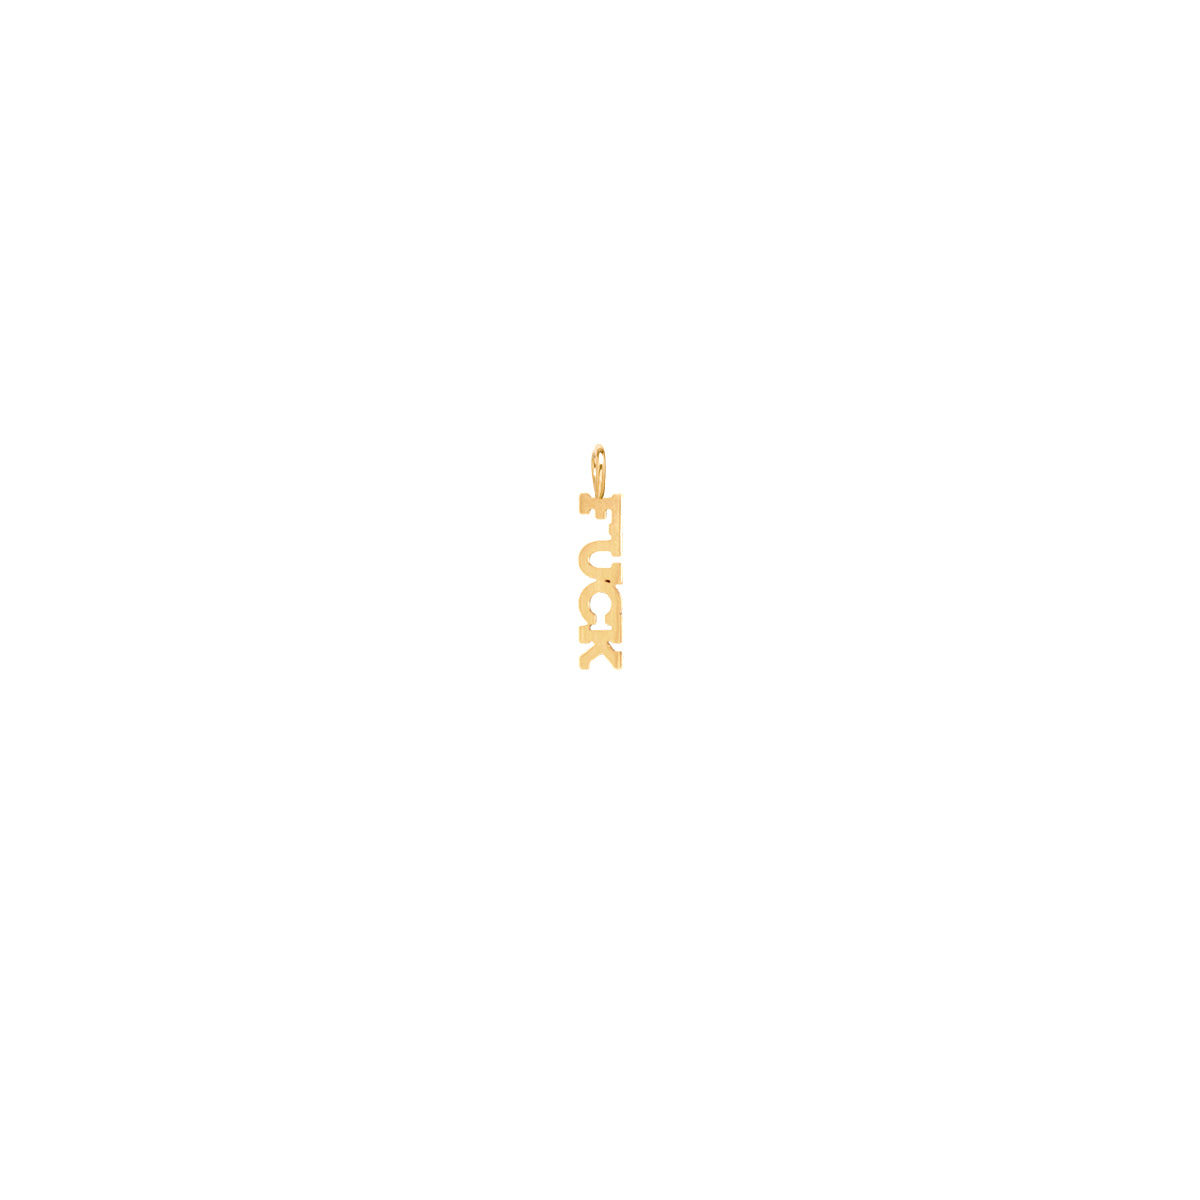 14k single tiny FUCK charm pendant